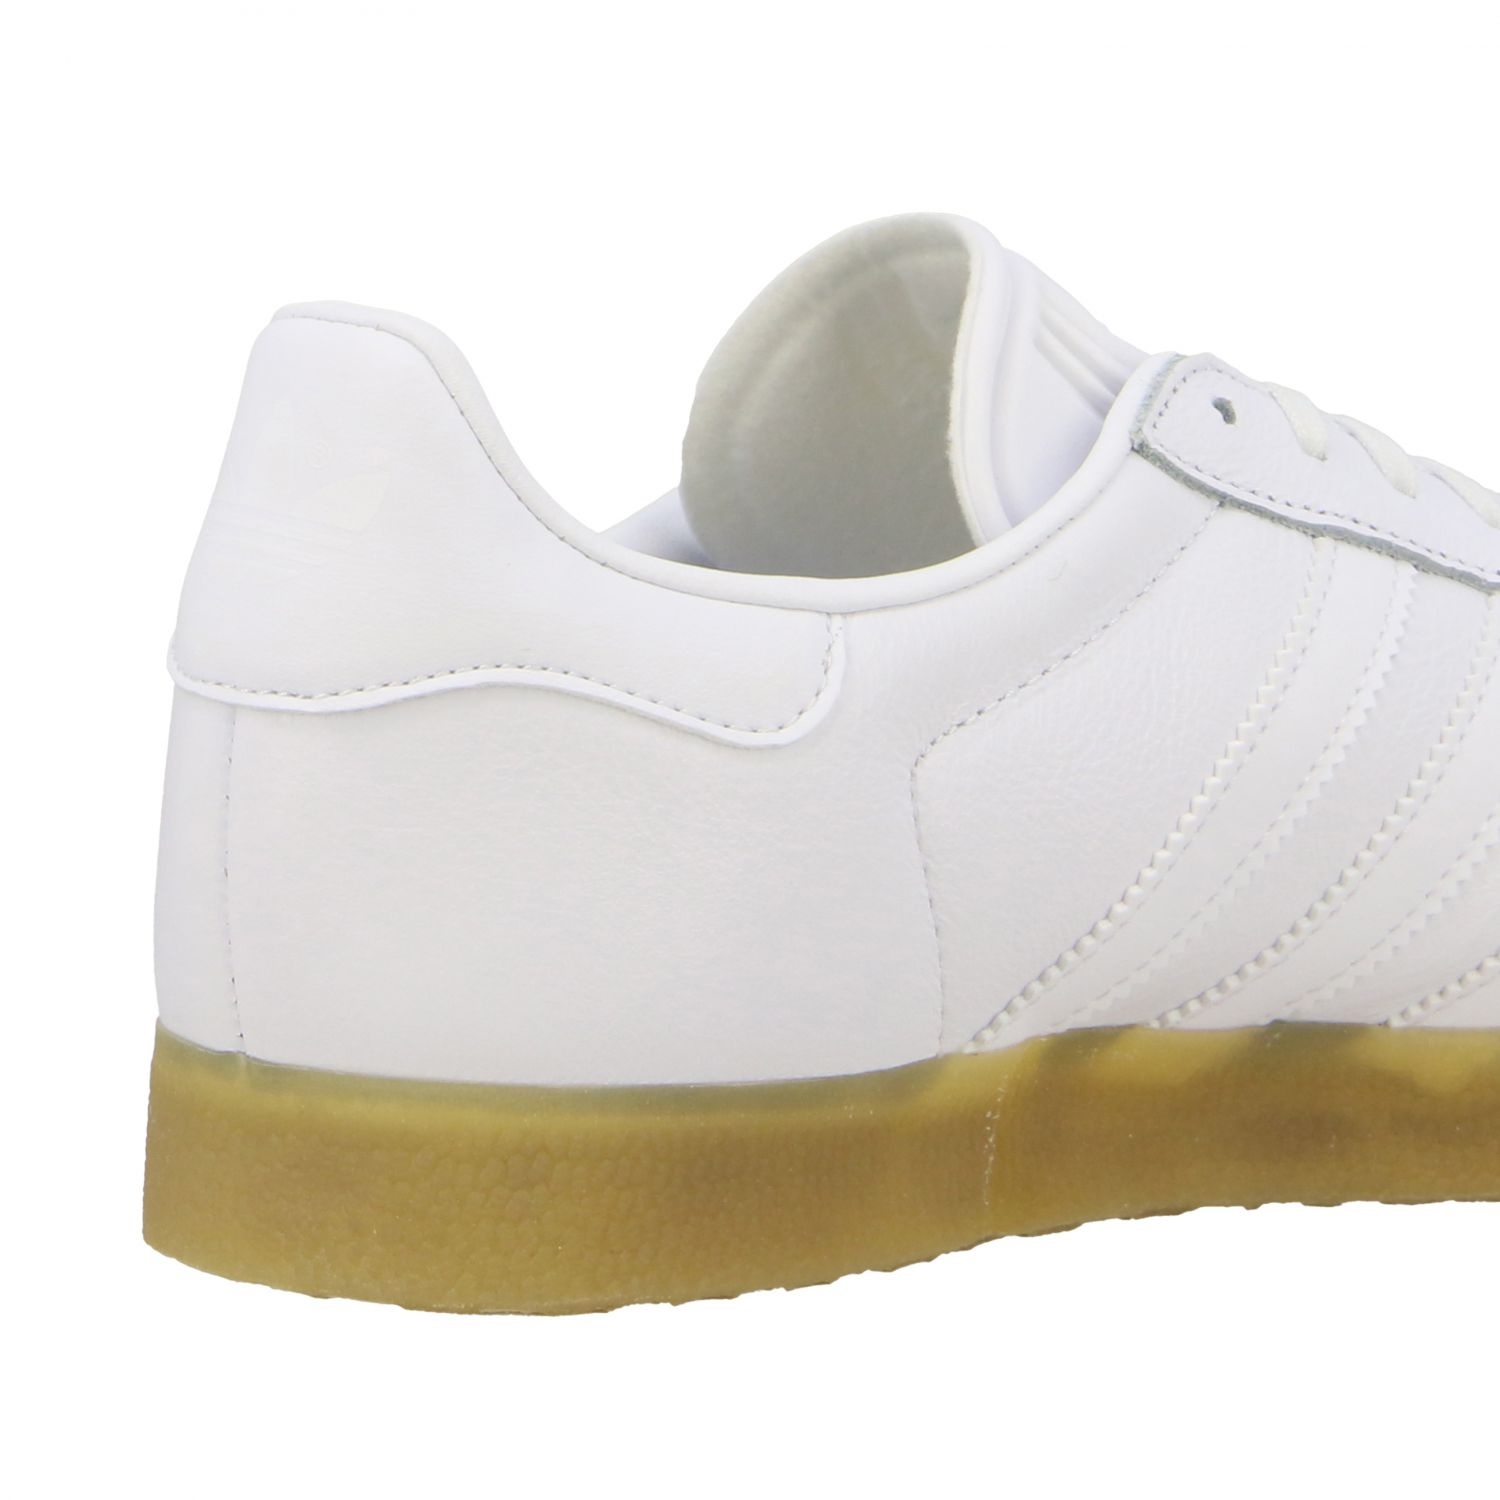 Sneakers Adidas Originals: Adidas Originals Gazelle leather sneakers with logo white 5